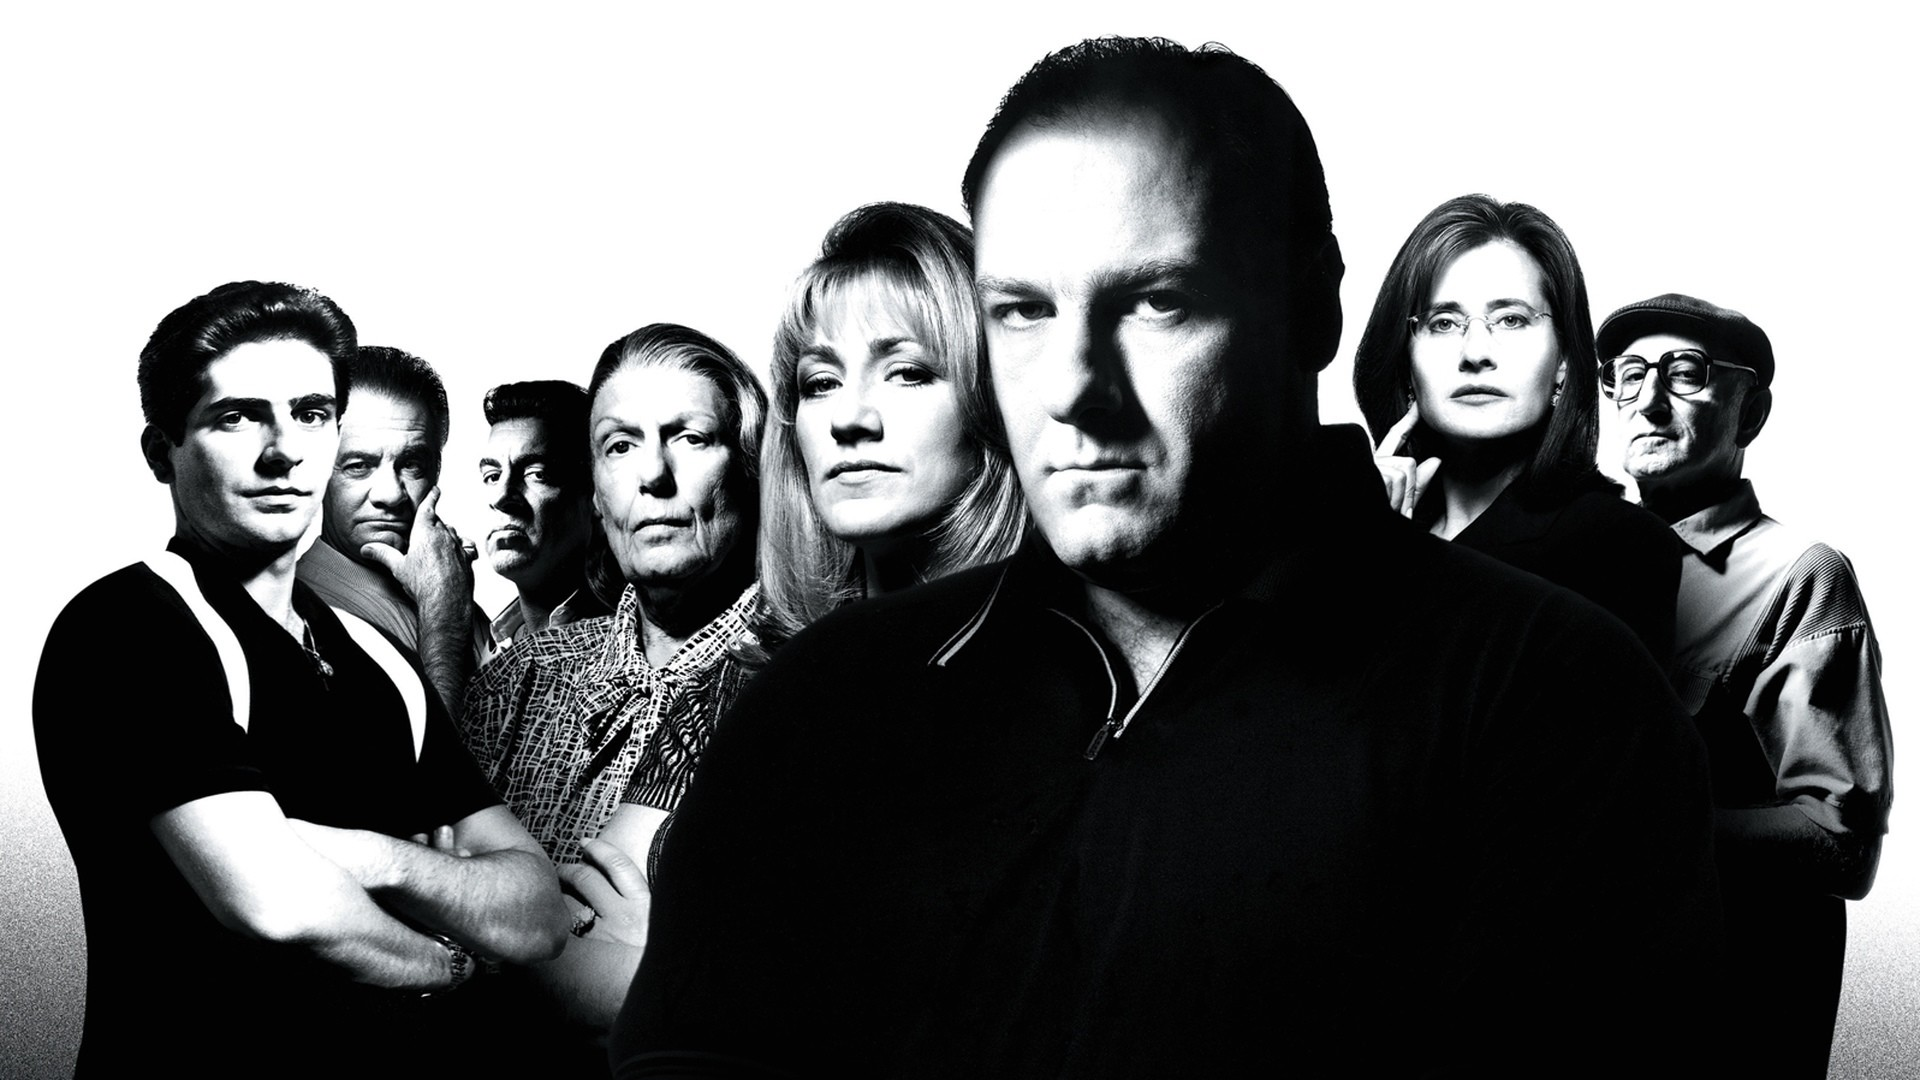 Res: 1920x1080, Fernsehserien - The Sopranos Wallpaper